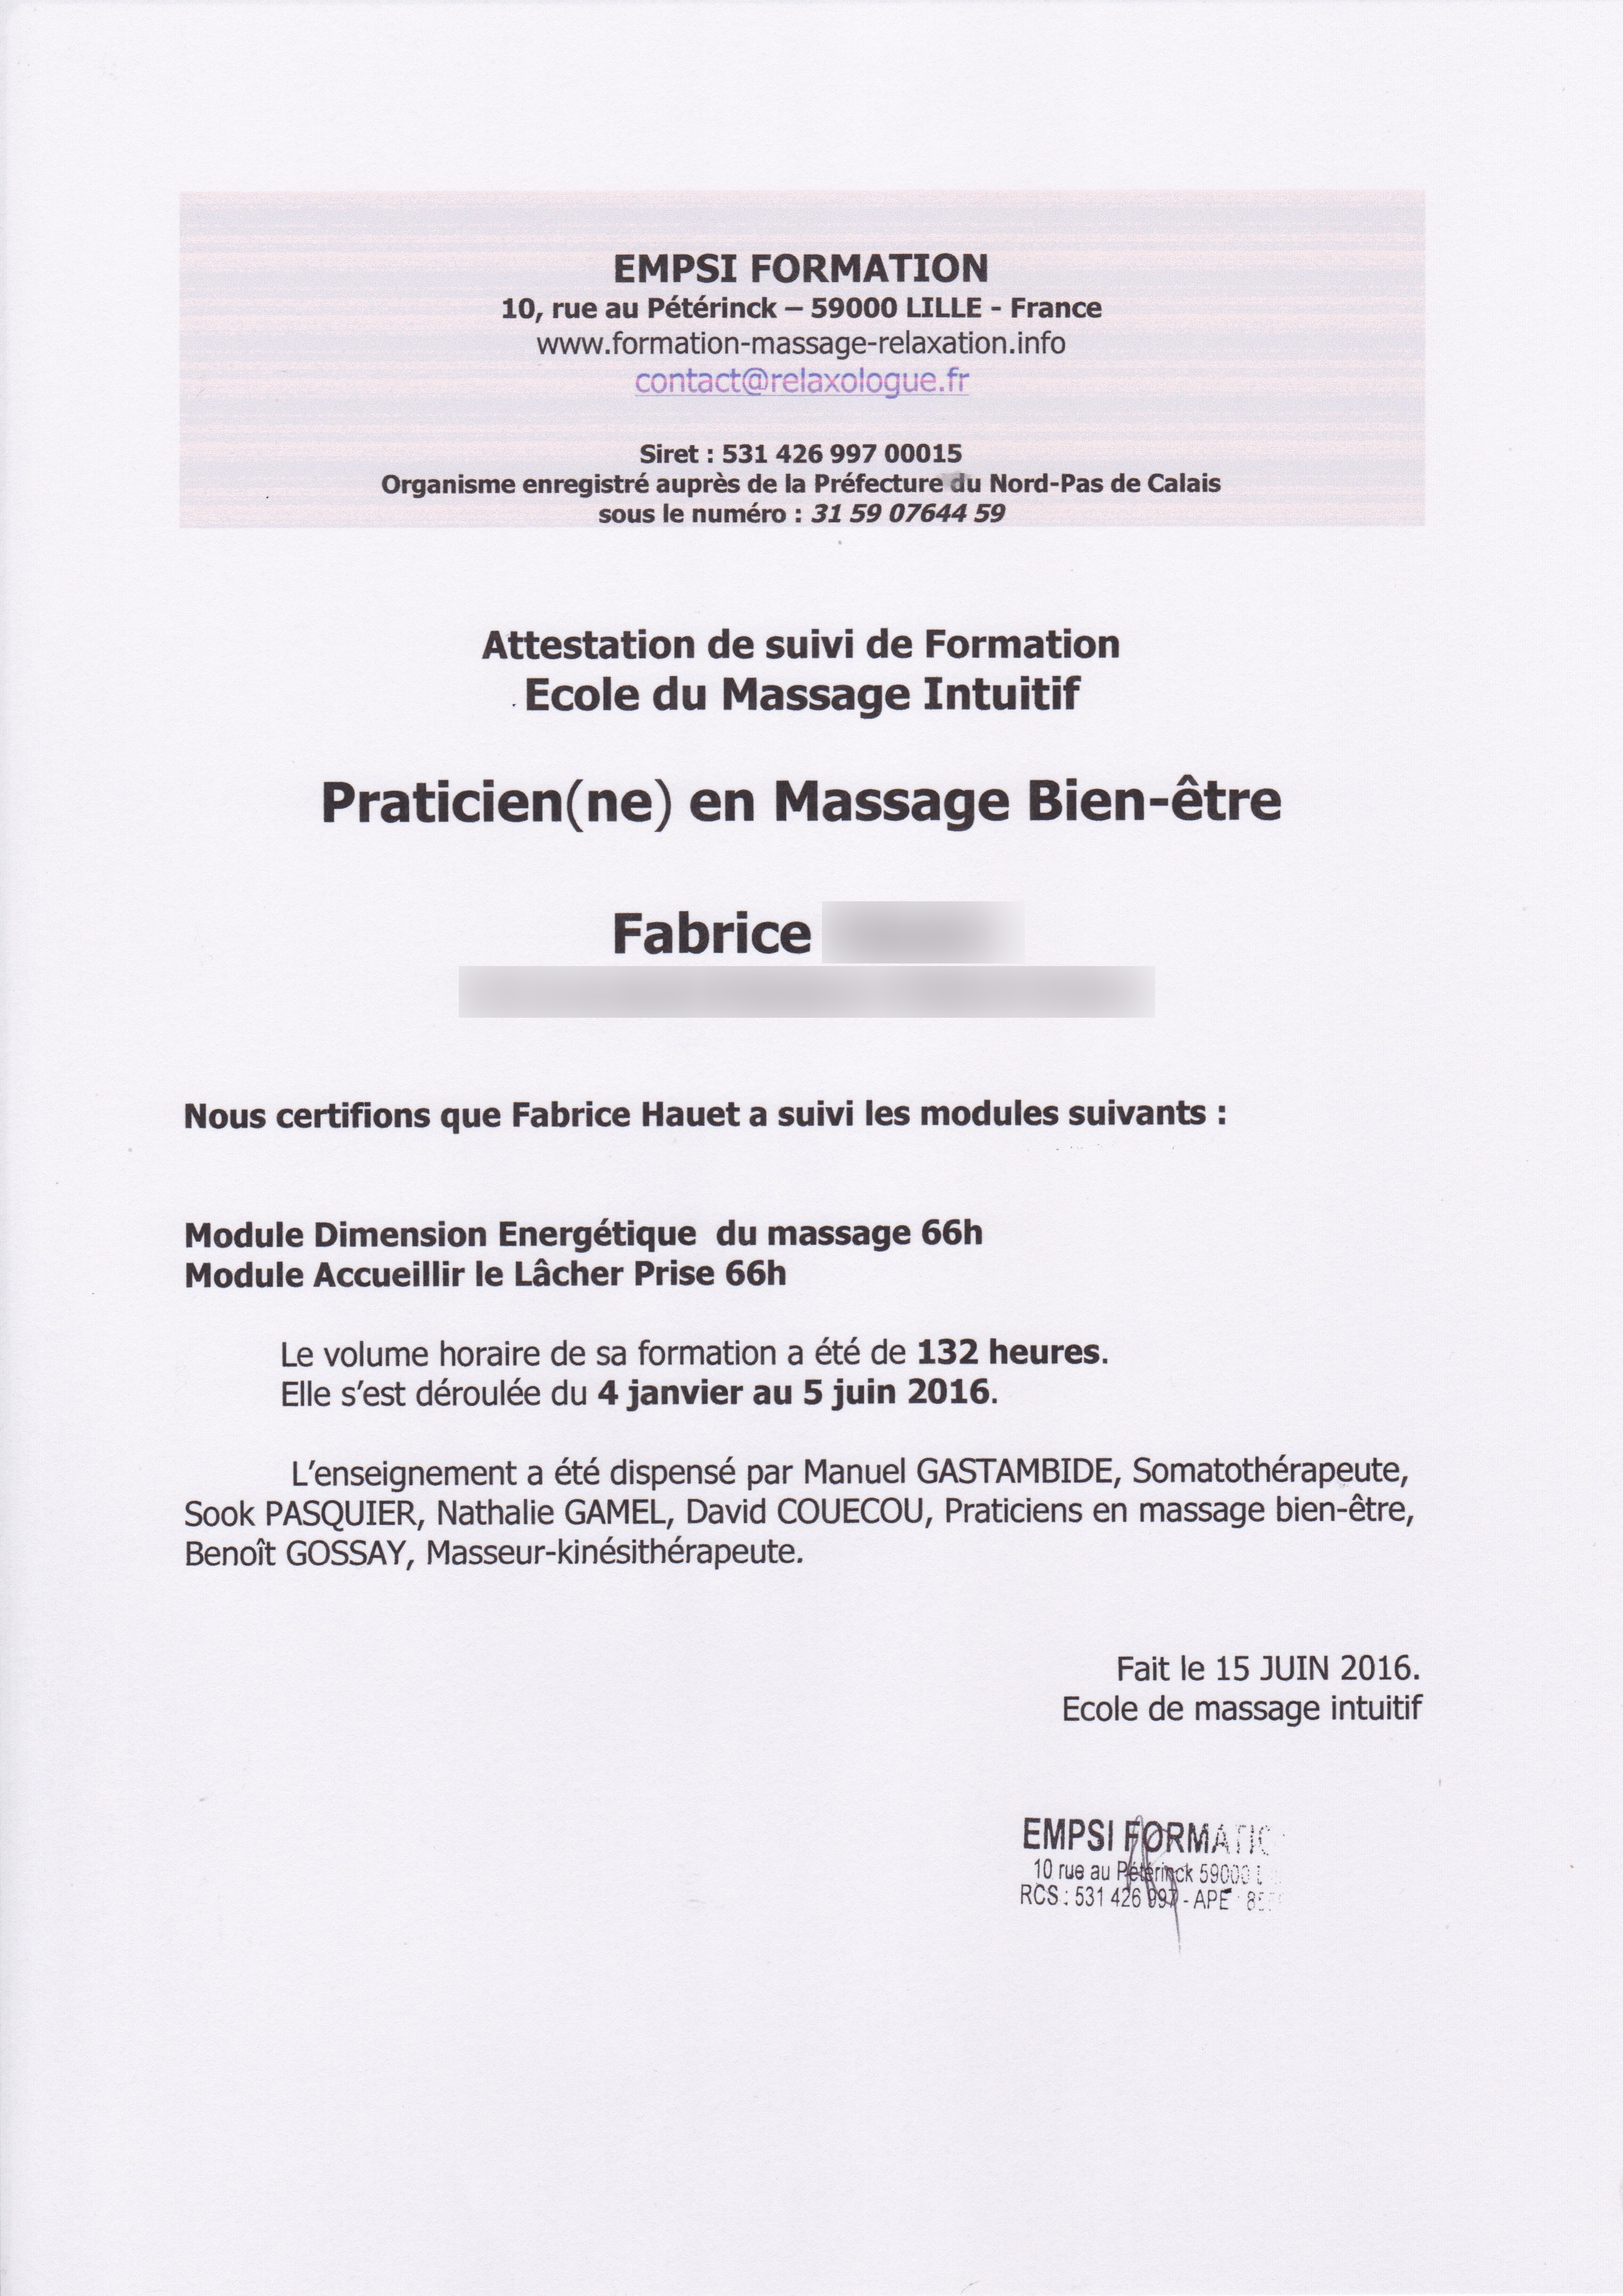 5809eec4d457a_Attestation Fabrice.jpeg